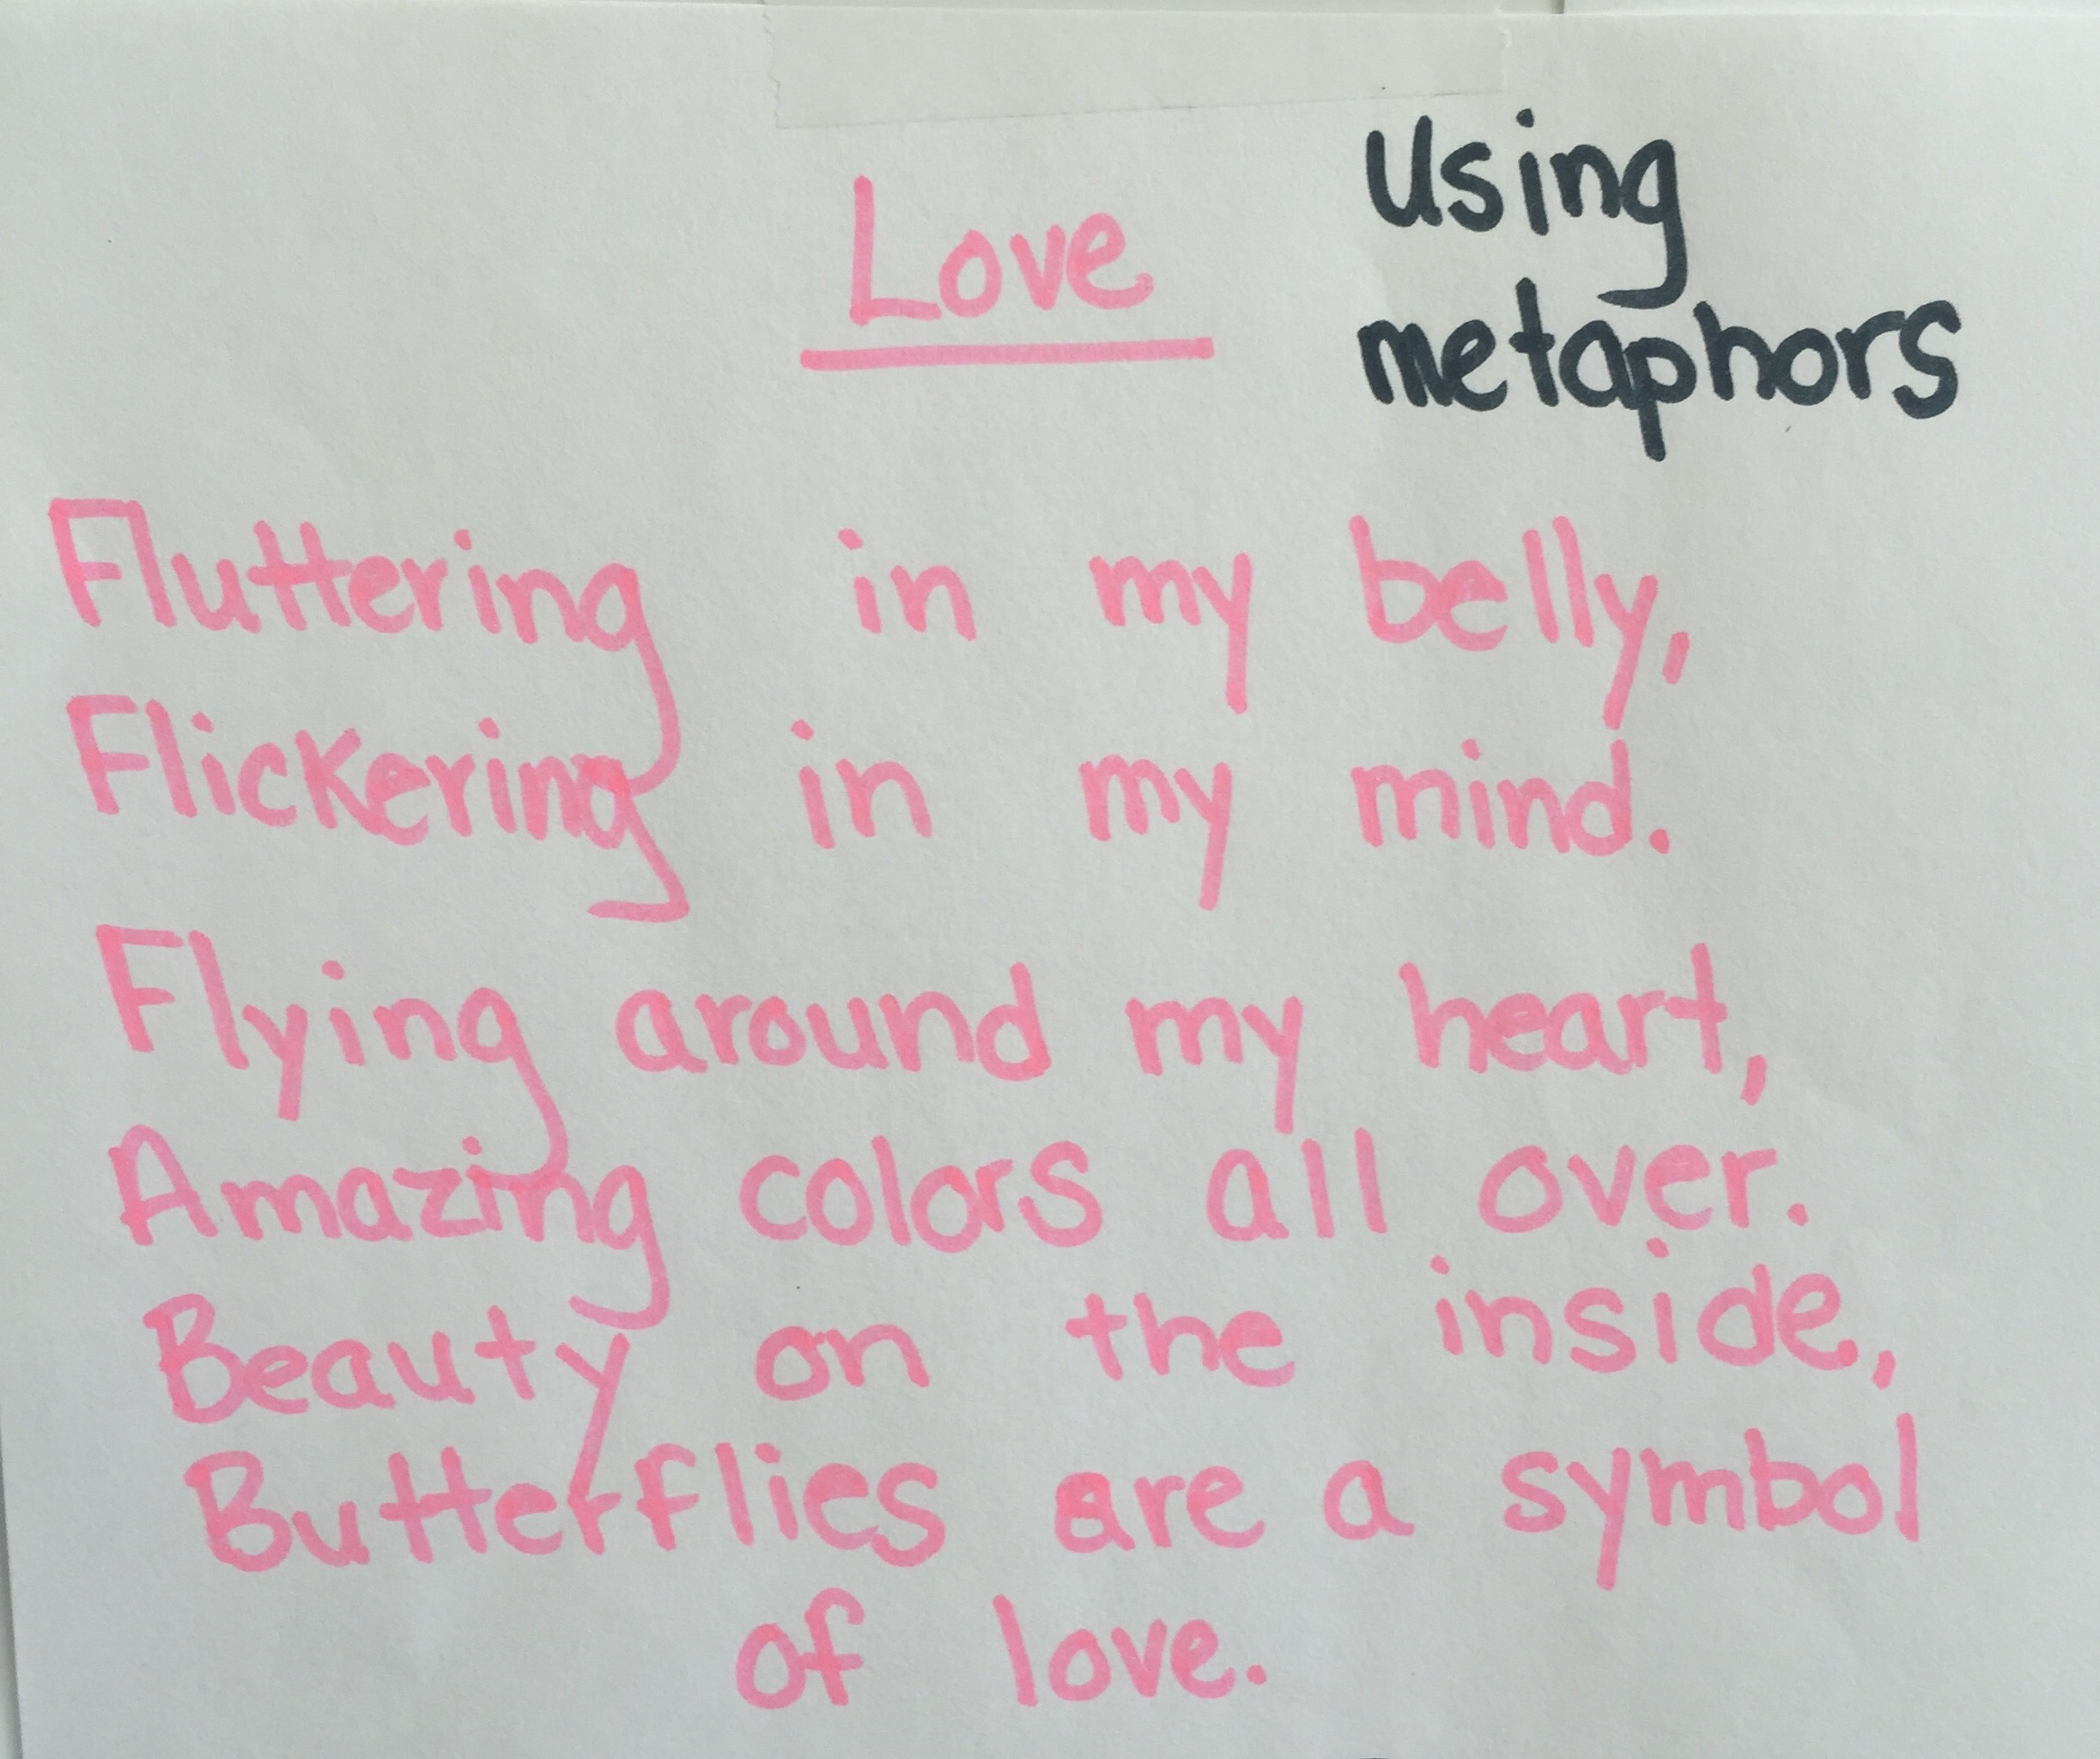 An Old Poem About Butterflies Using Metaphor